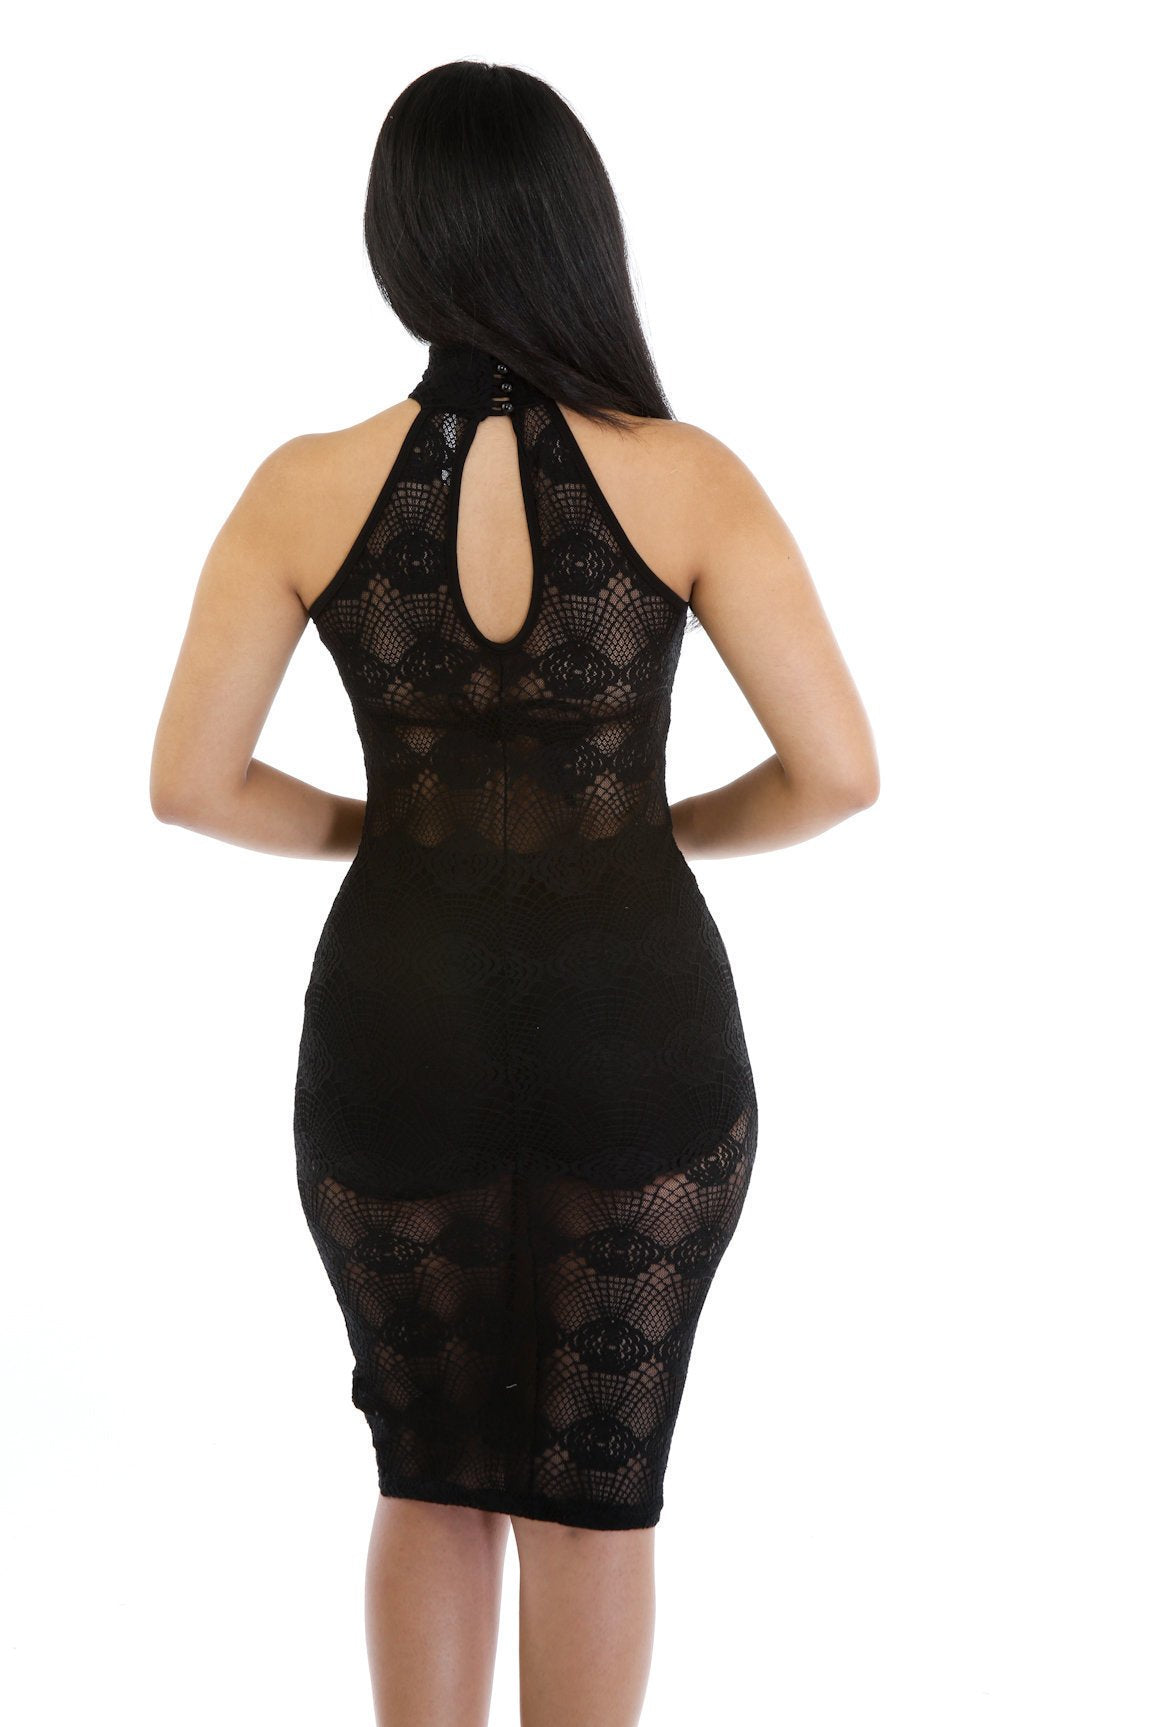 Picture Me in Lace Dress